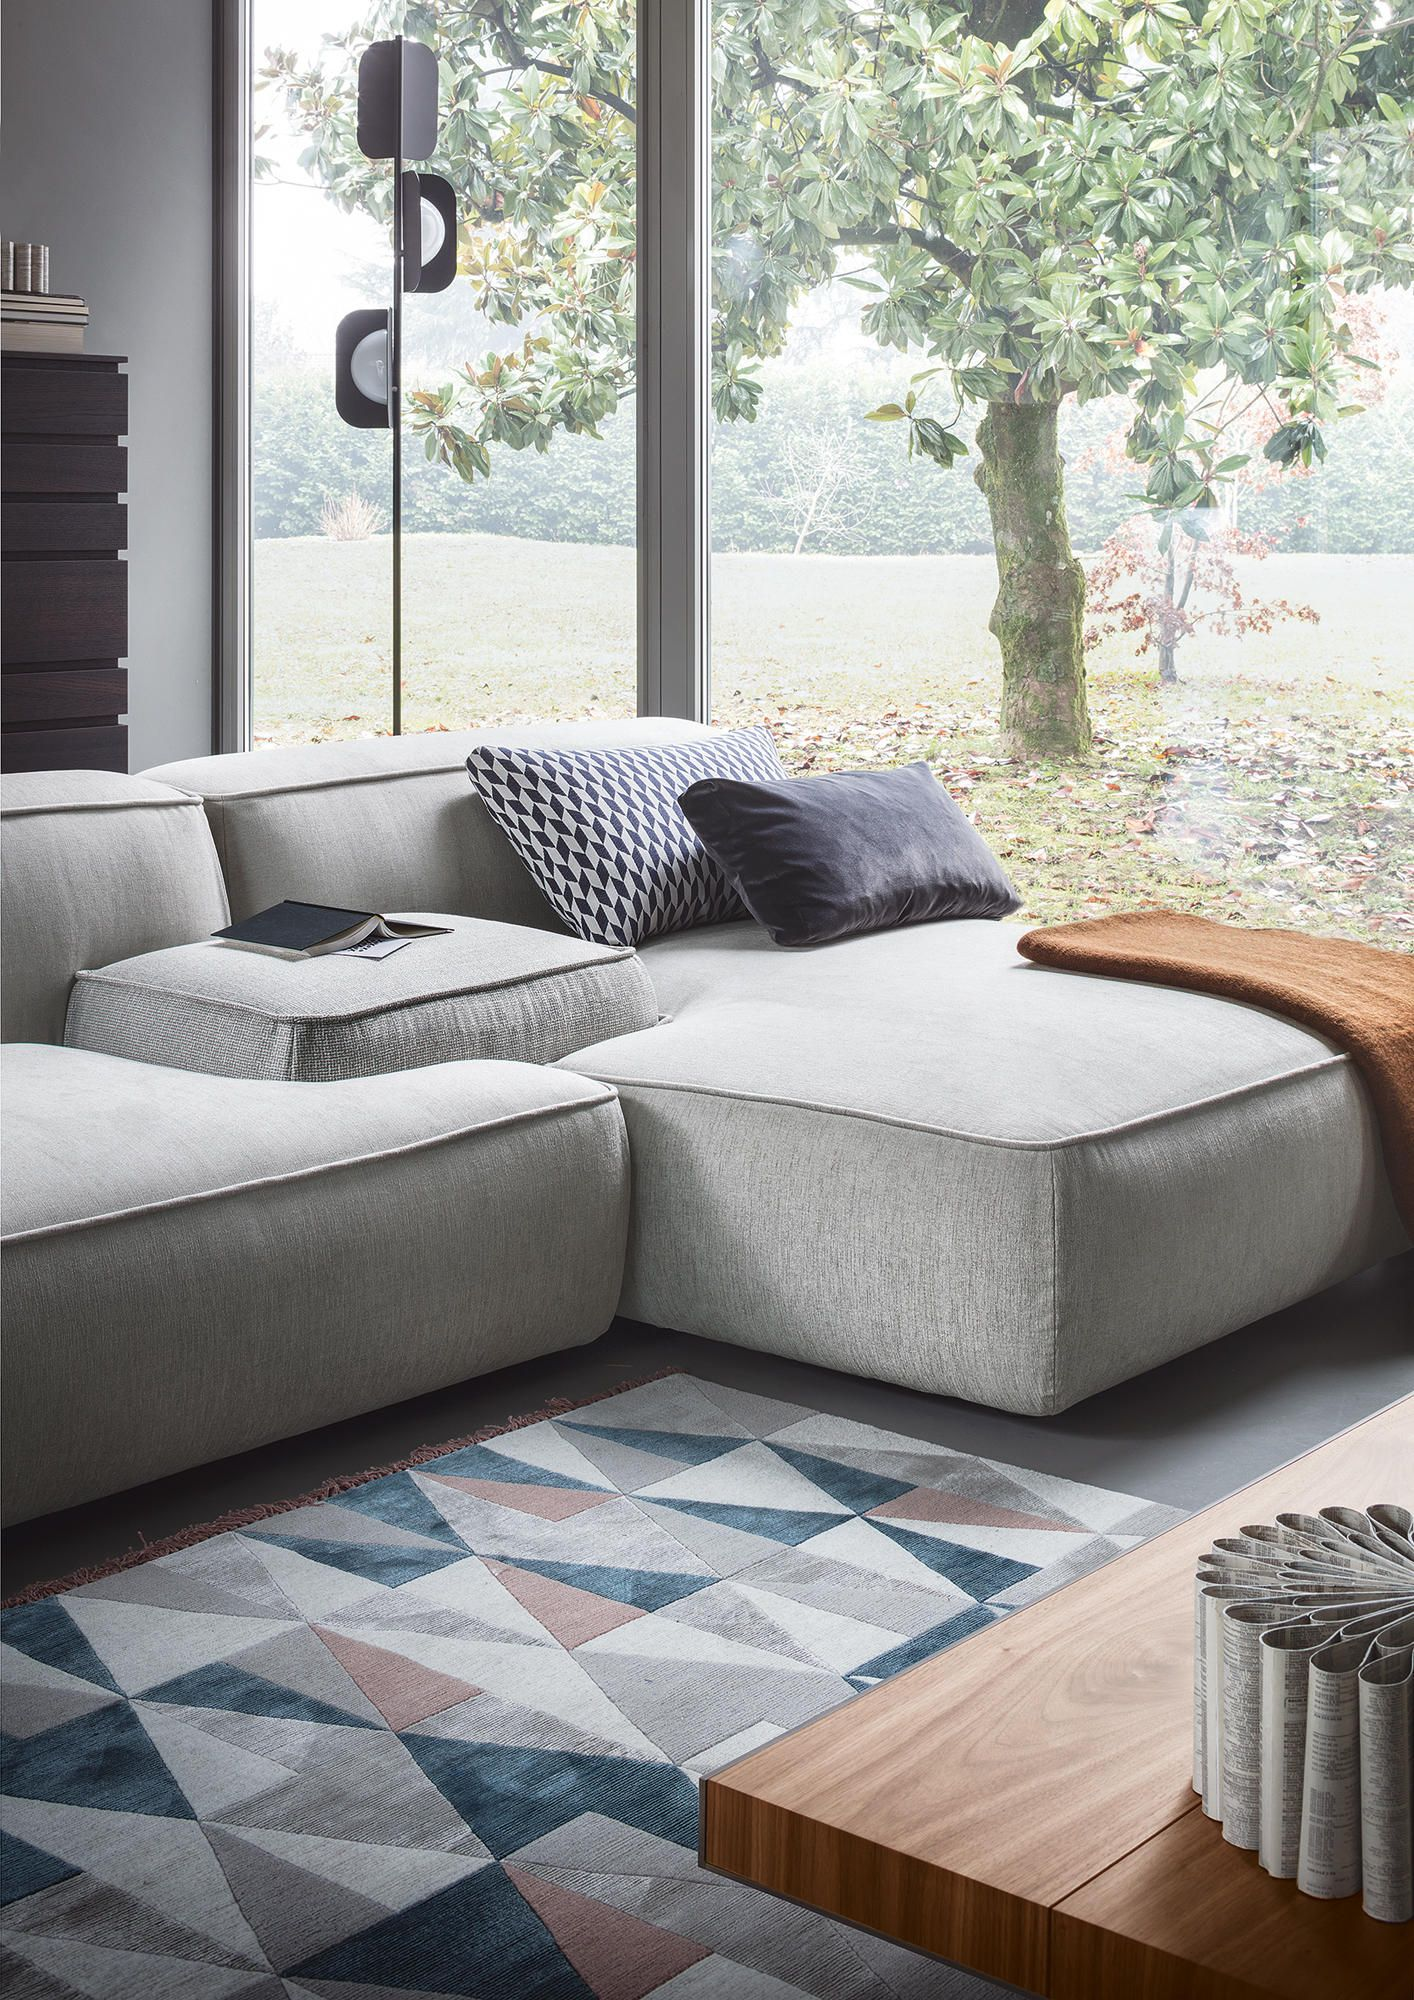 Flexible Living Lema S Latest Upholstered Seating Systems Sofa